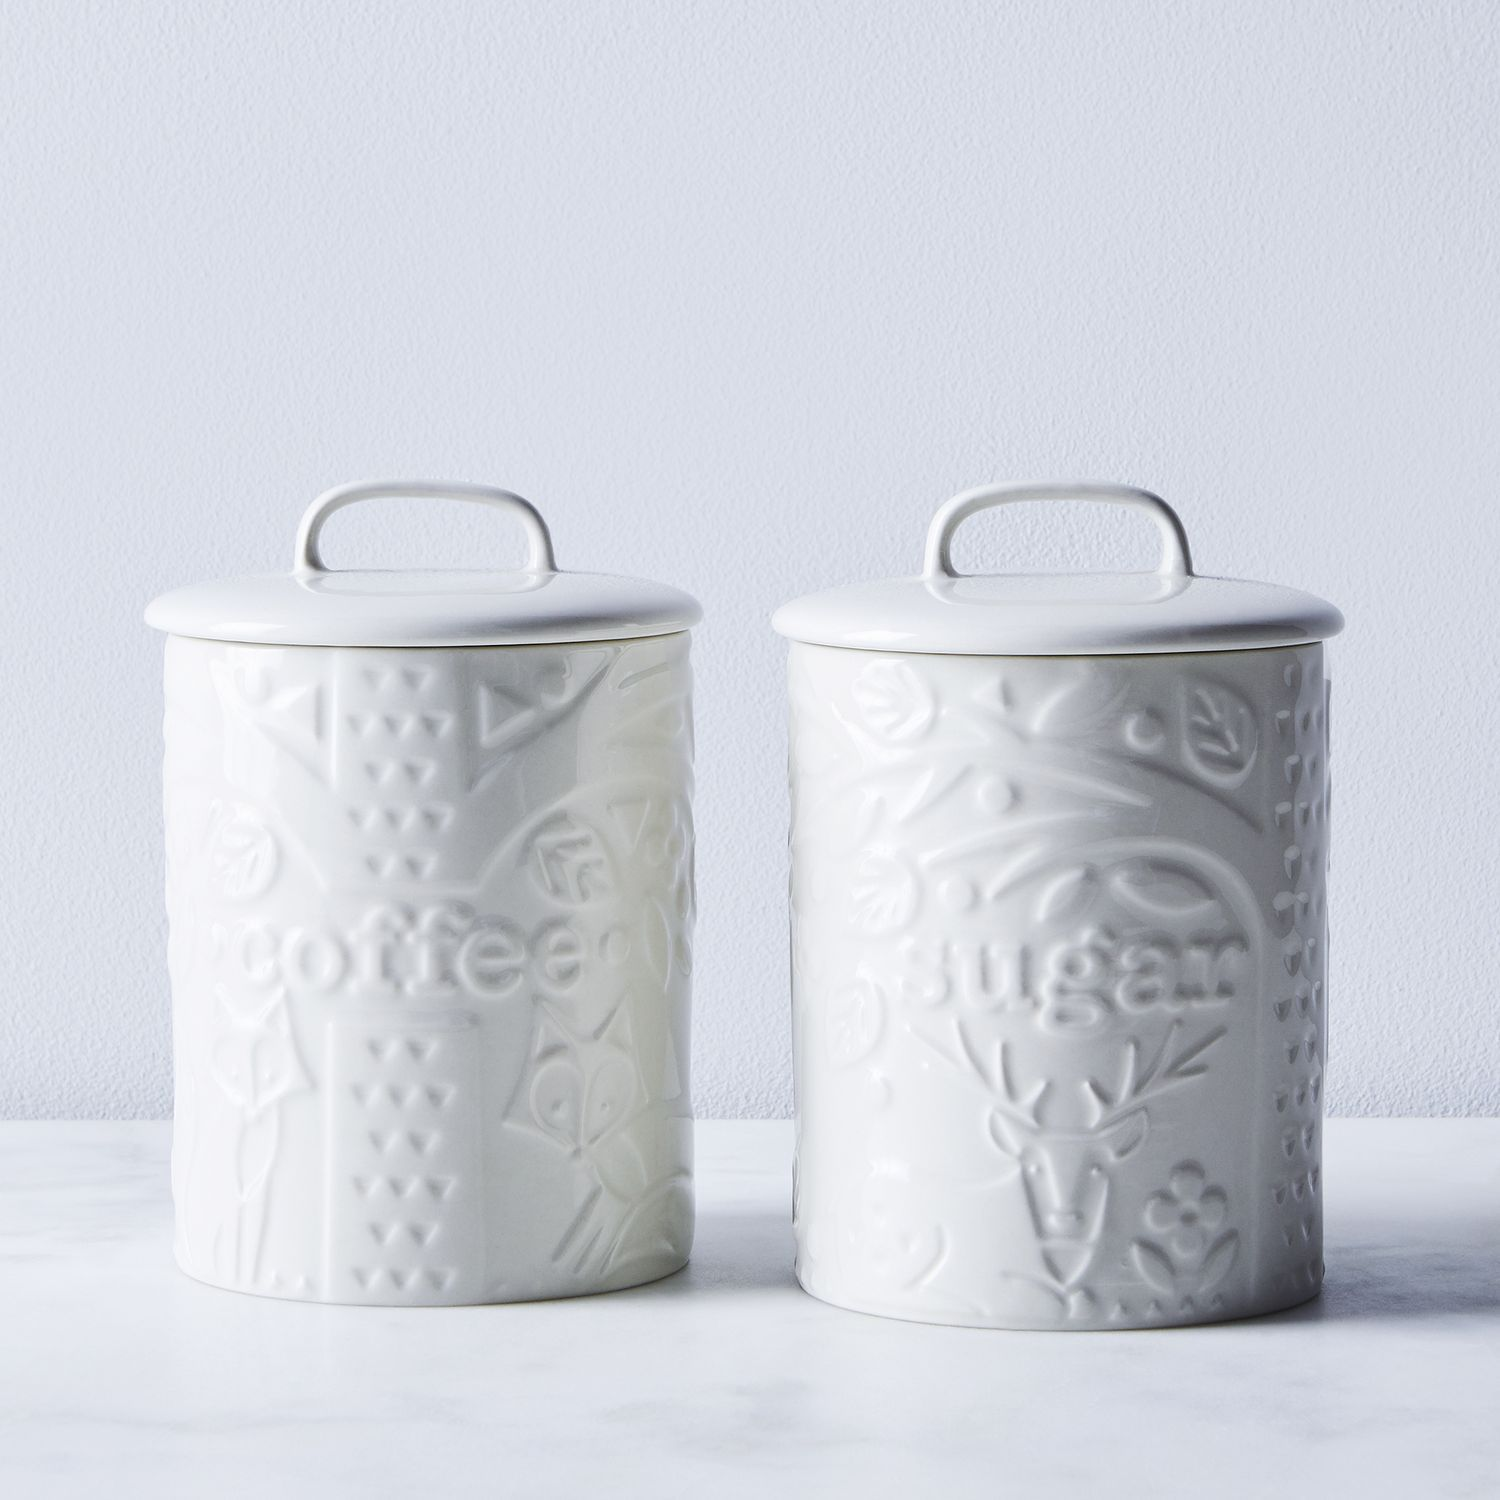 Housewarming Gifts For Young Couples Mason Cash Forest Coffee Sugar Canisters